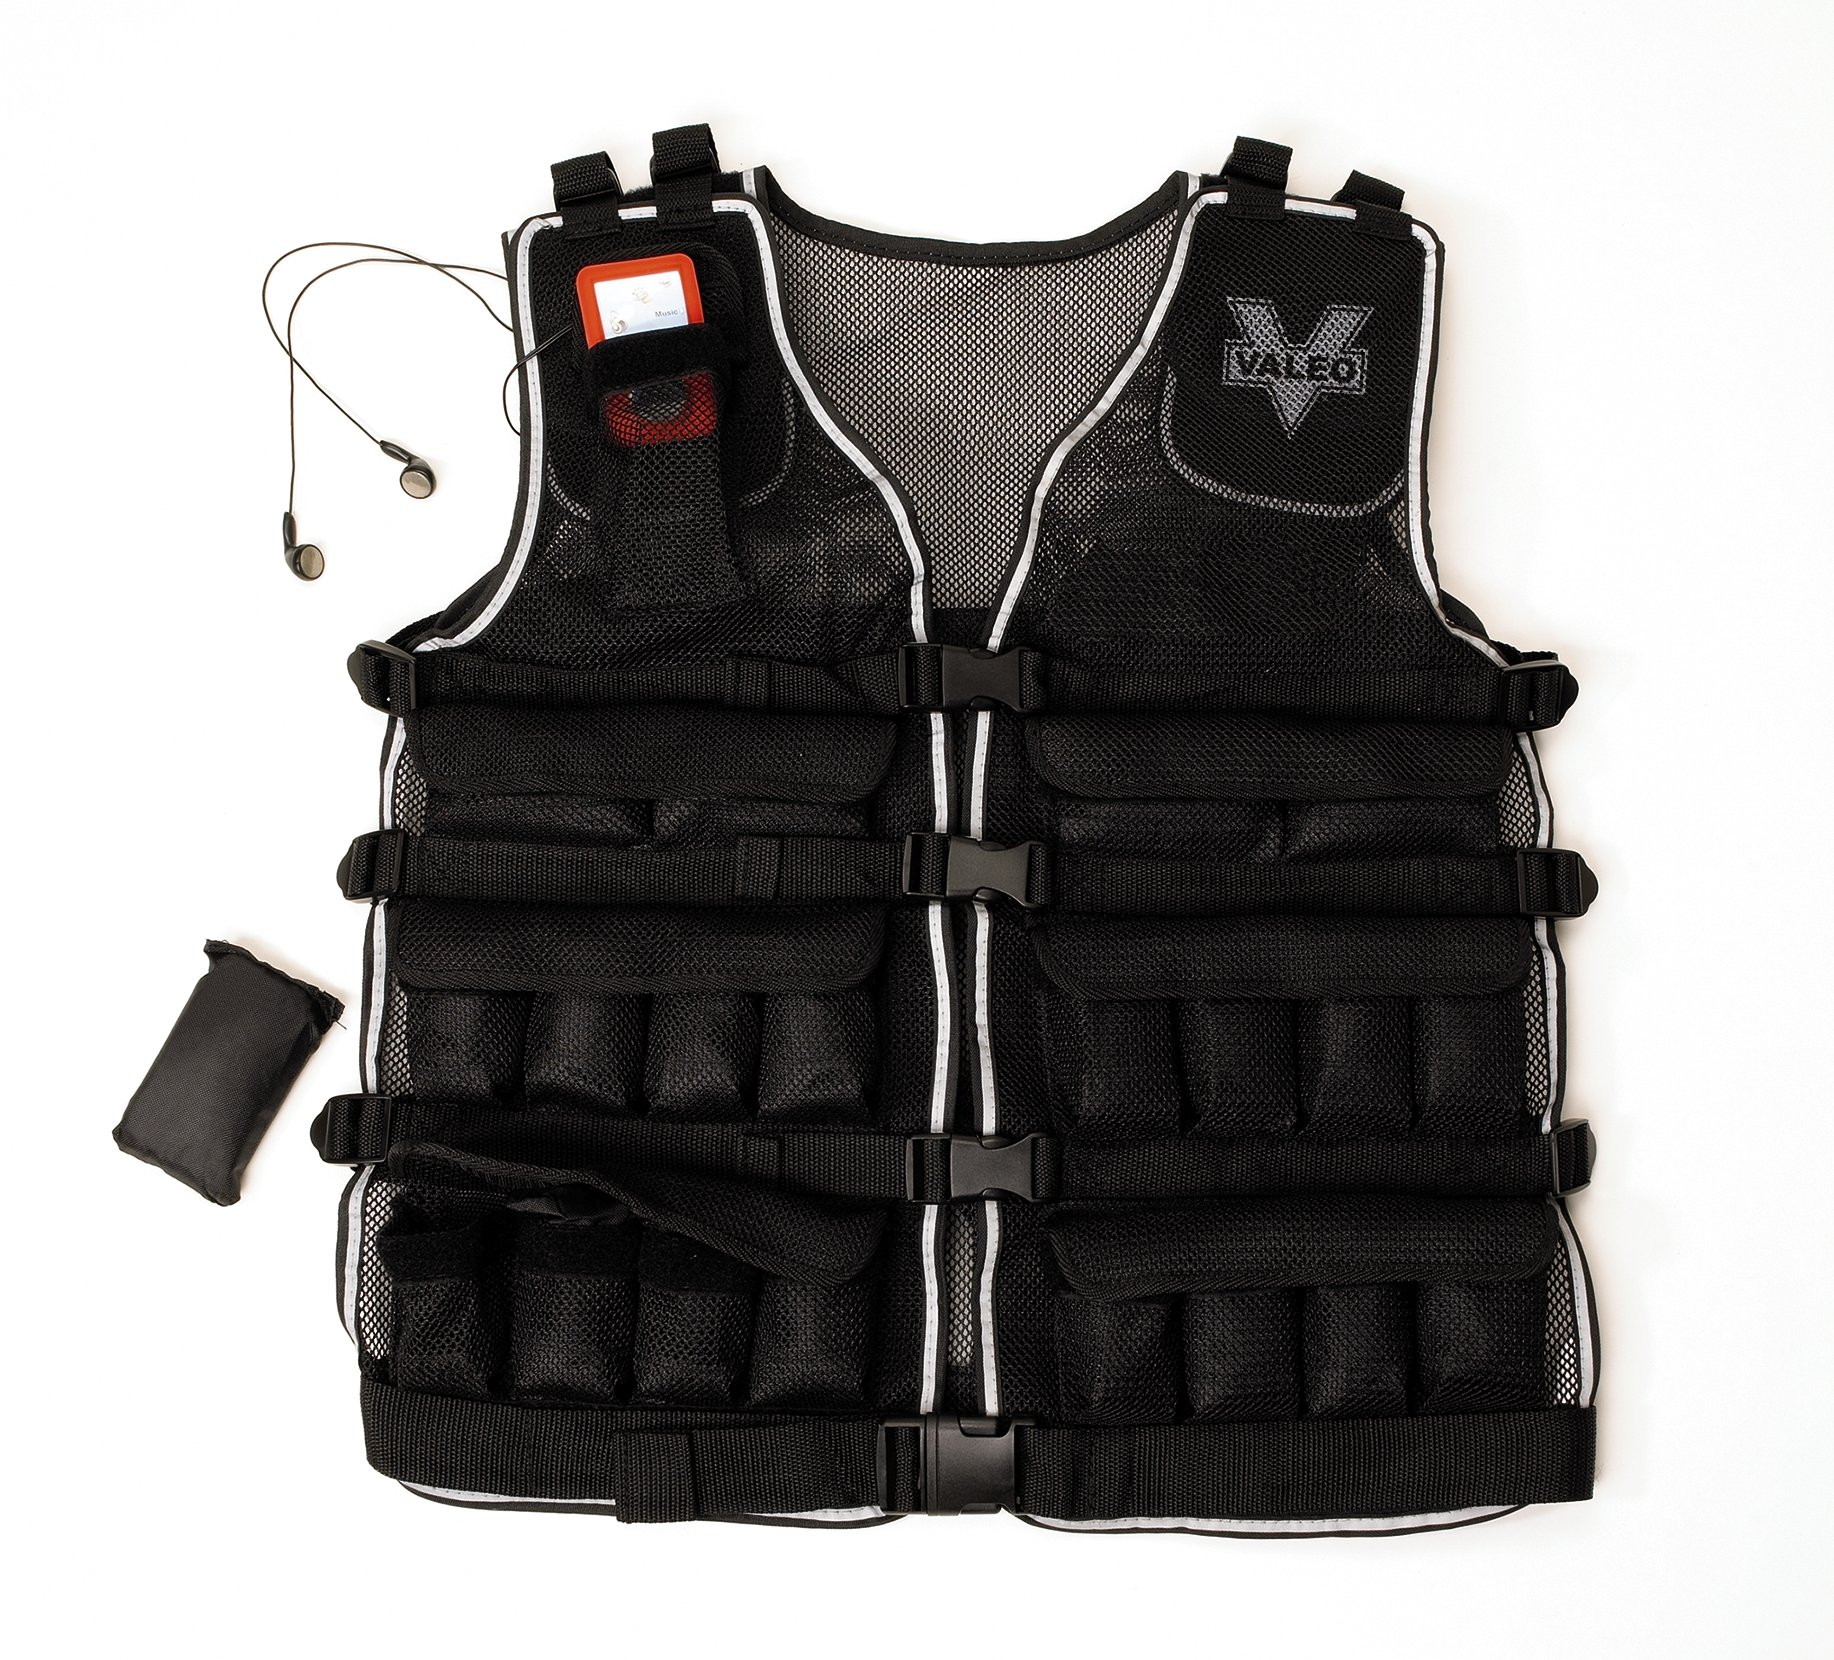 Valeo 20-Pound Weighted Vest With Removable 1 Pound Packs For Adjustments From 1 to 20 Pounds, VA4480BK